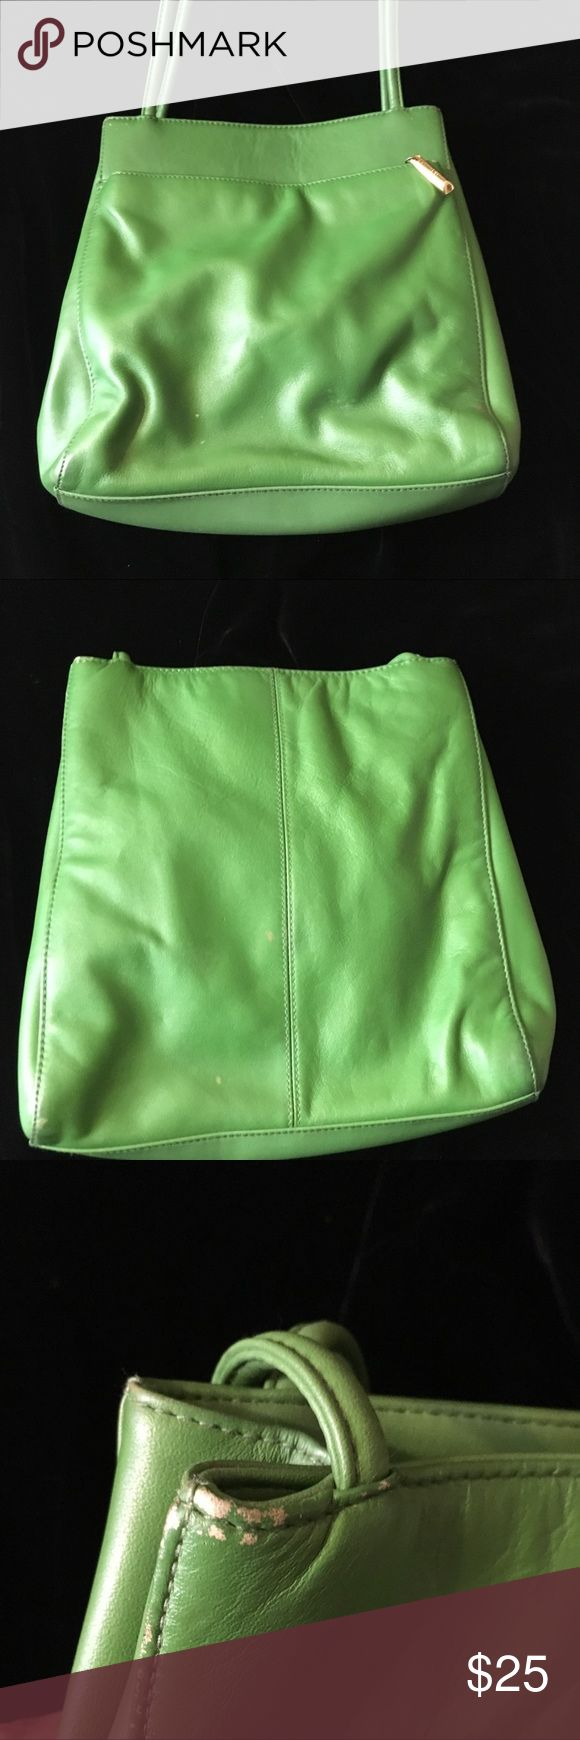 Giani Bernini Lime Green Shoulder Bag Giani Bernini Lime Green Shoulder Bag with magnetic closure. See photos. Giani Bernini Bags Shoulder Bags